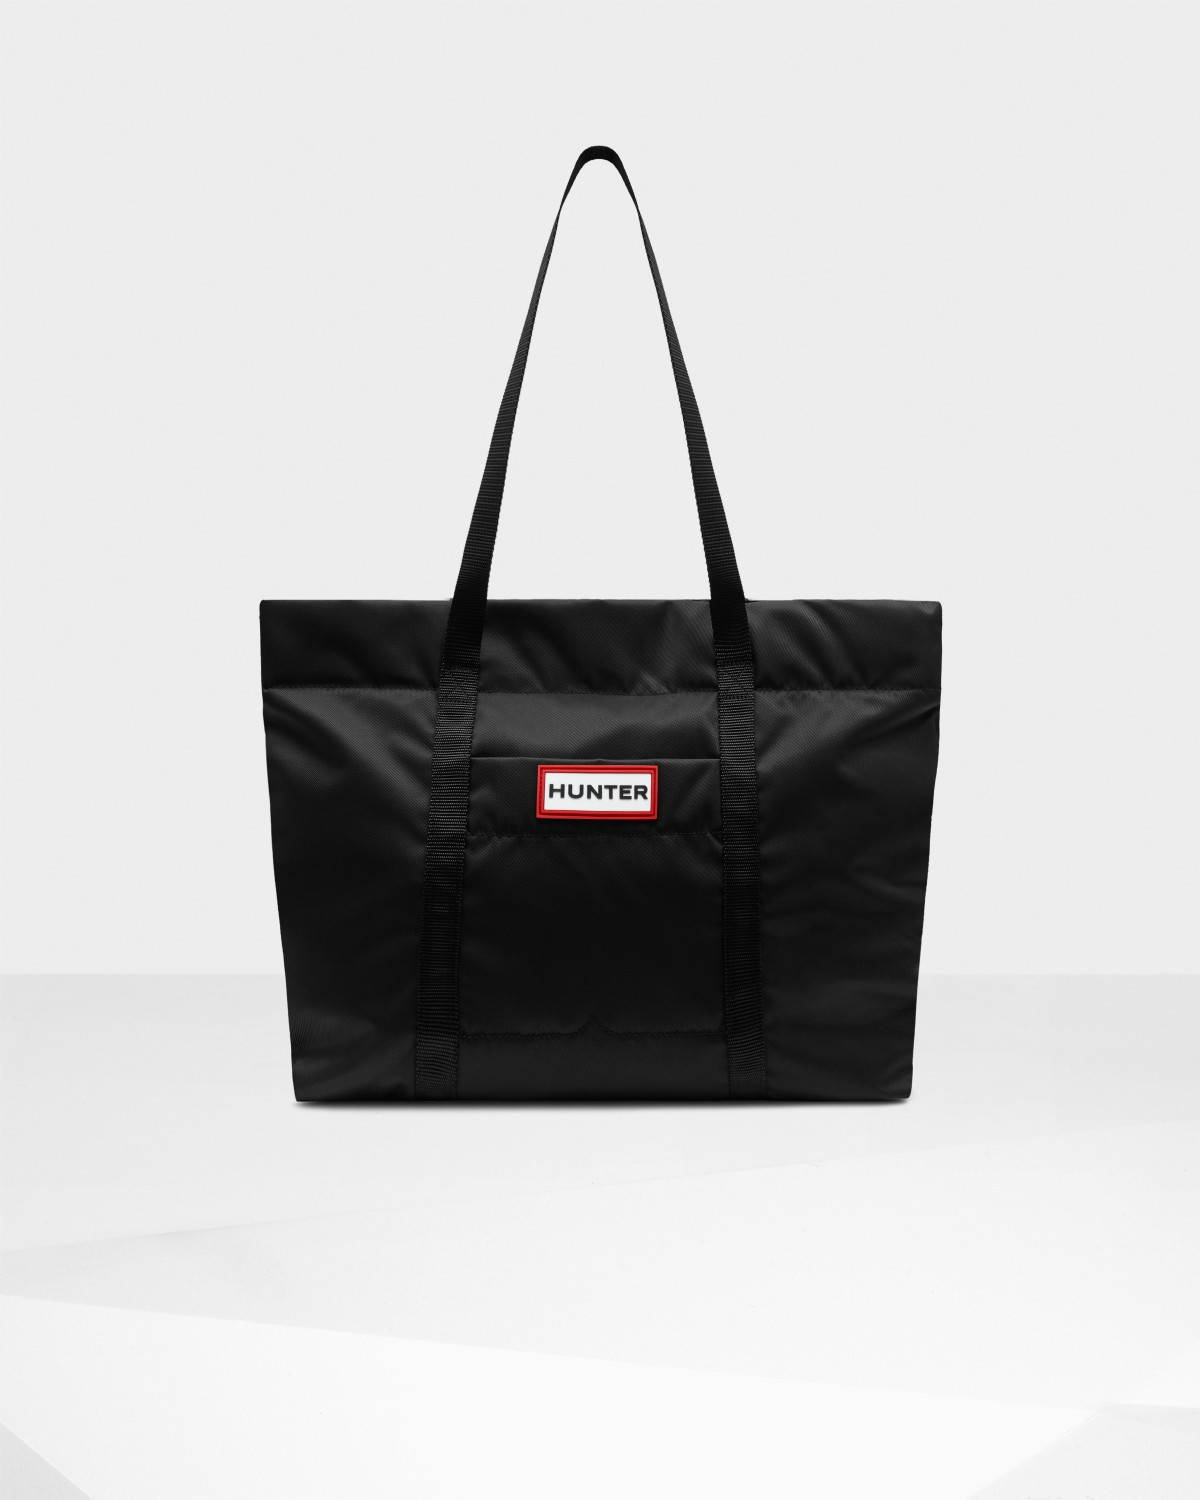 63113050e3 Hunter Black Original Nylon Tote